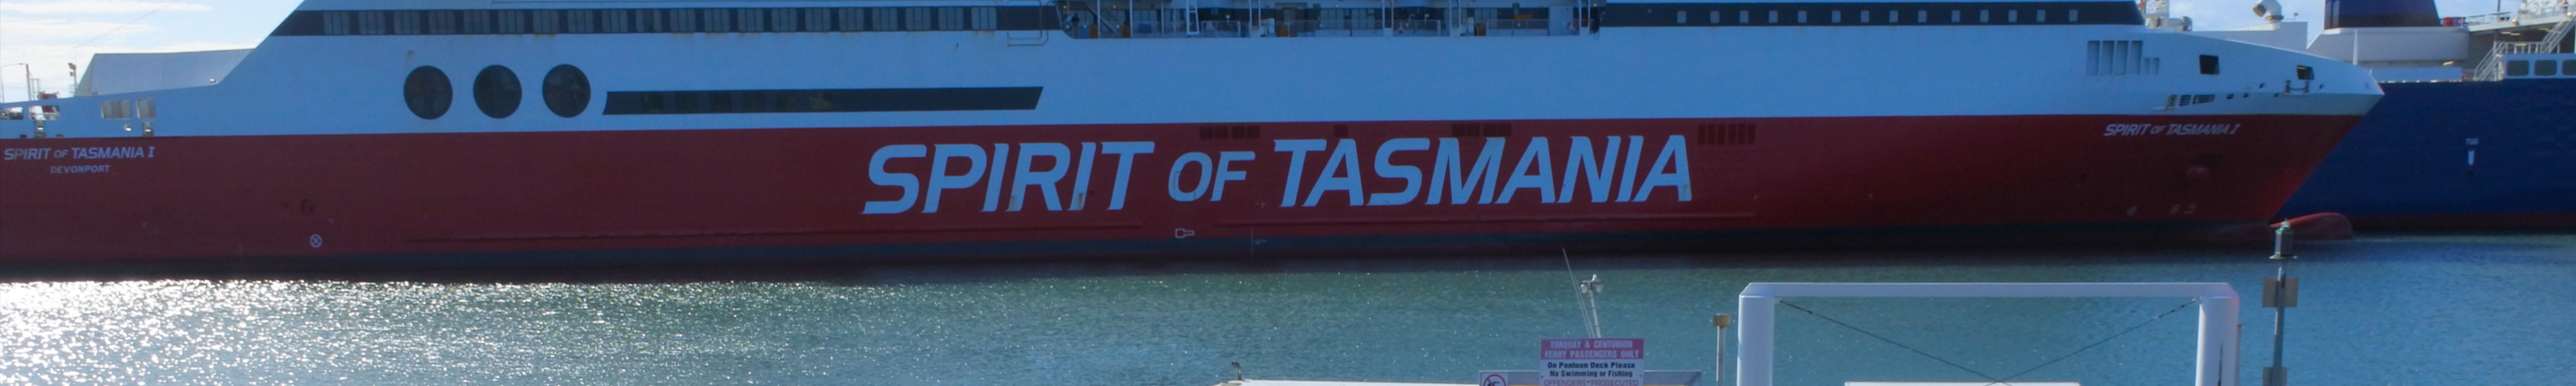 Spirit of Tasmania, TT-Line Vessel